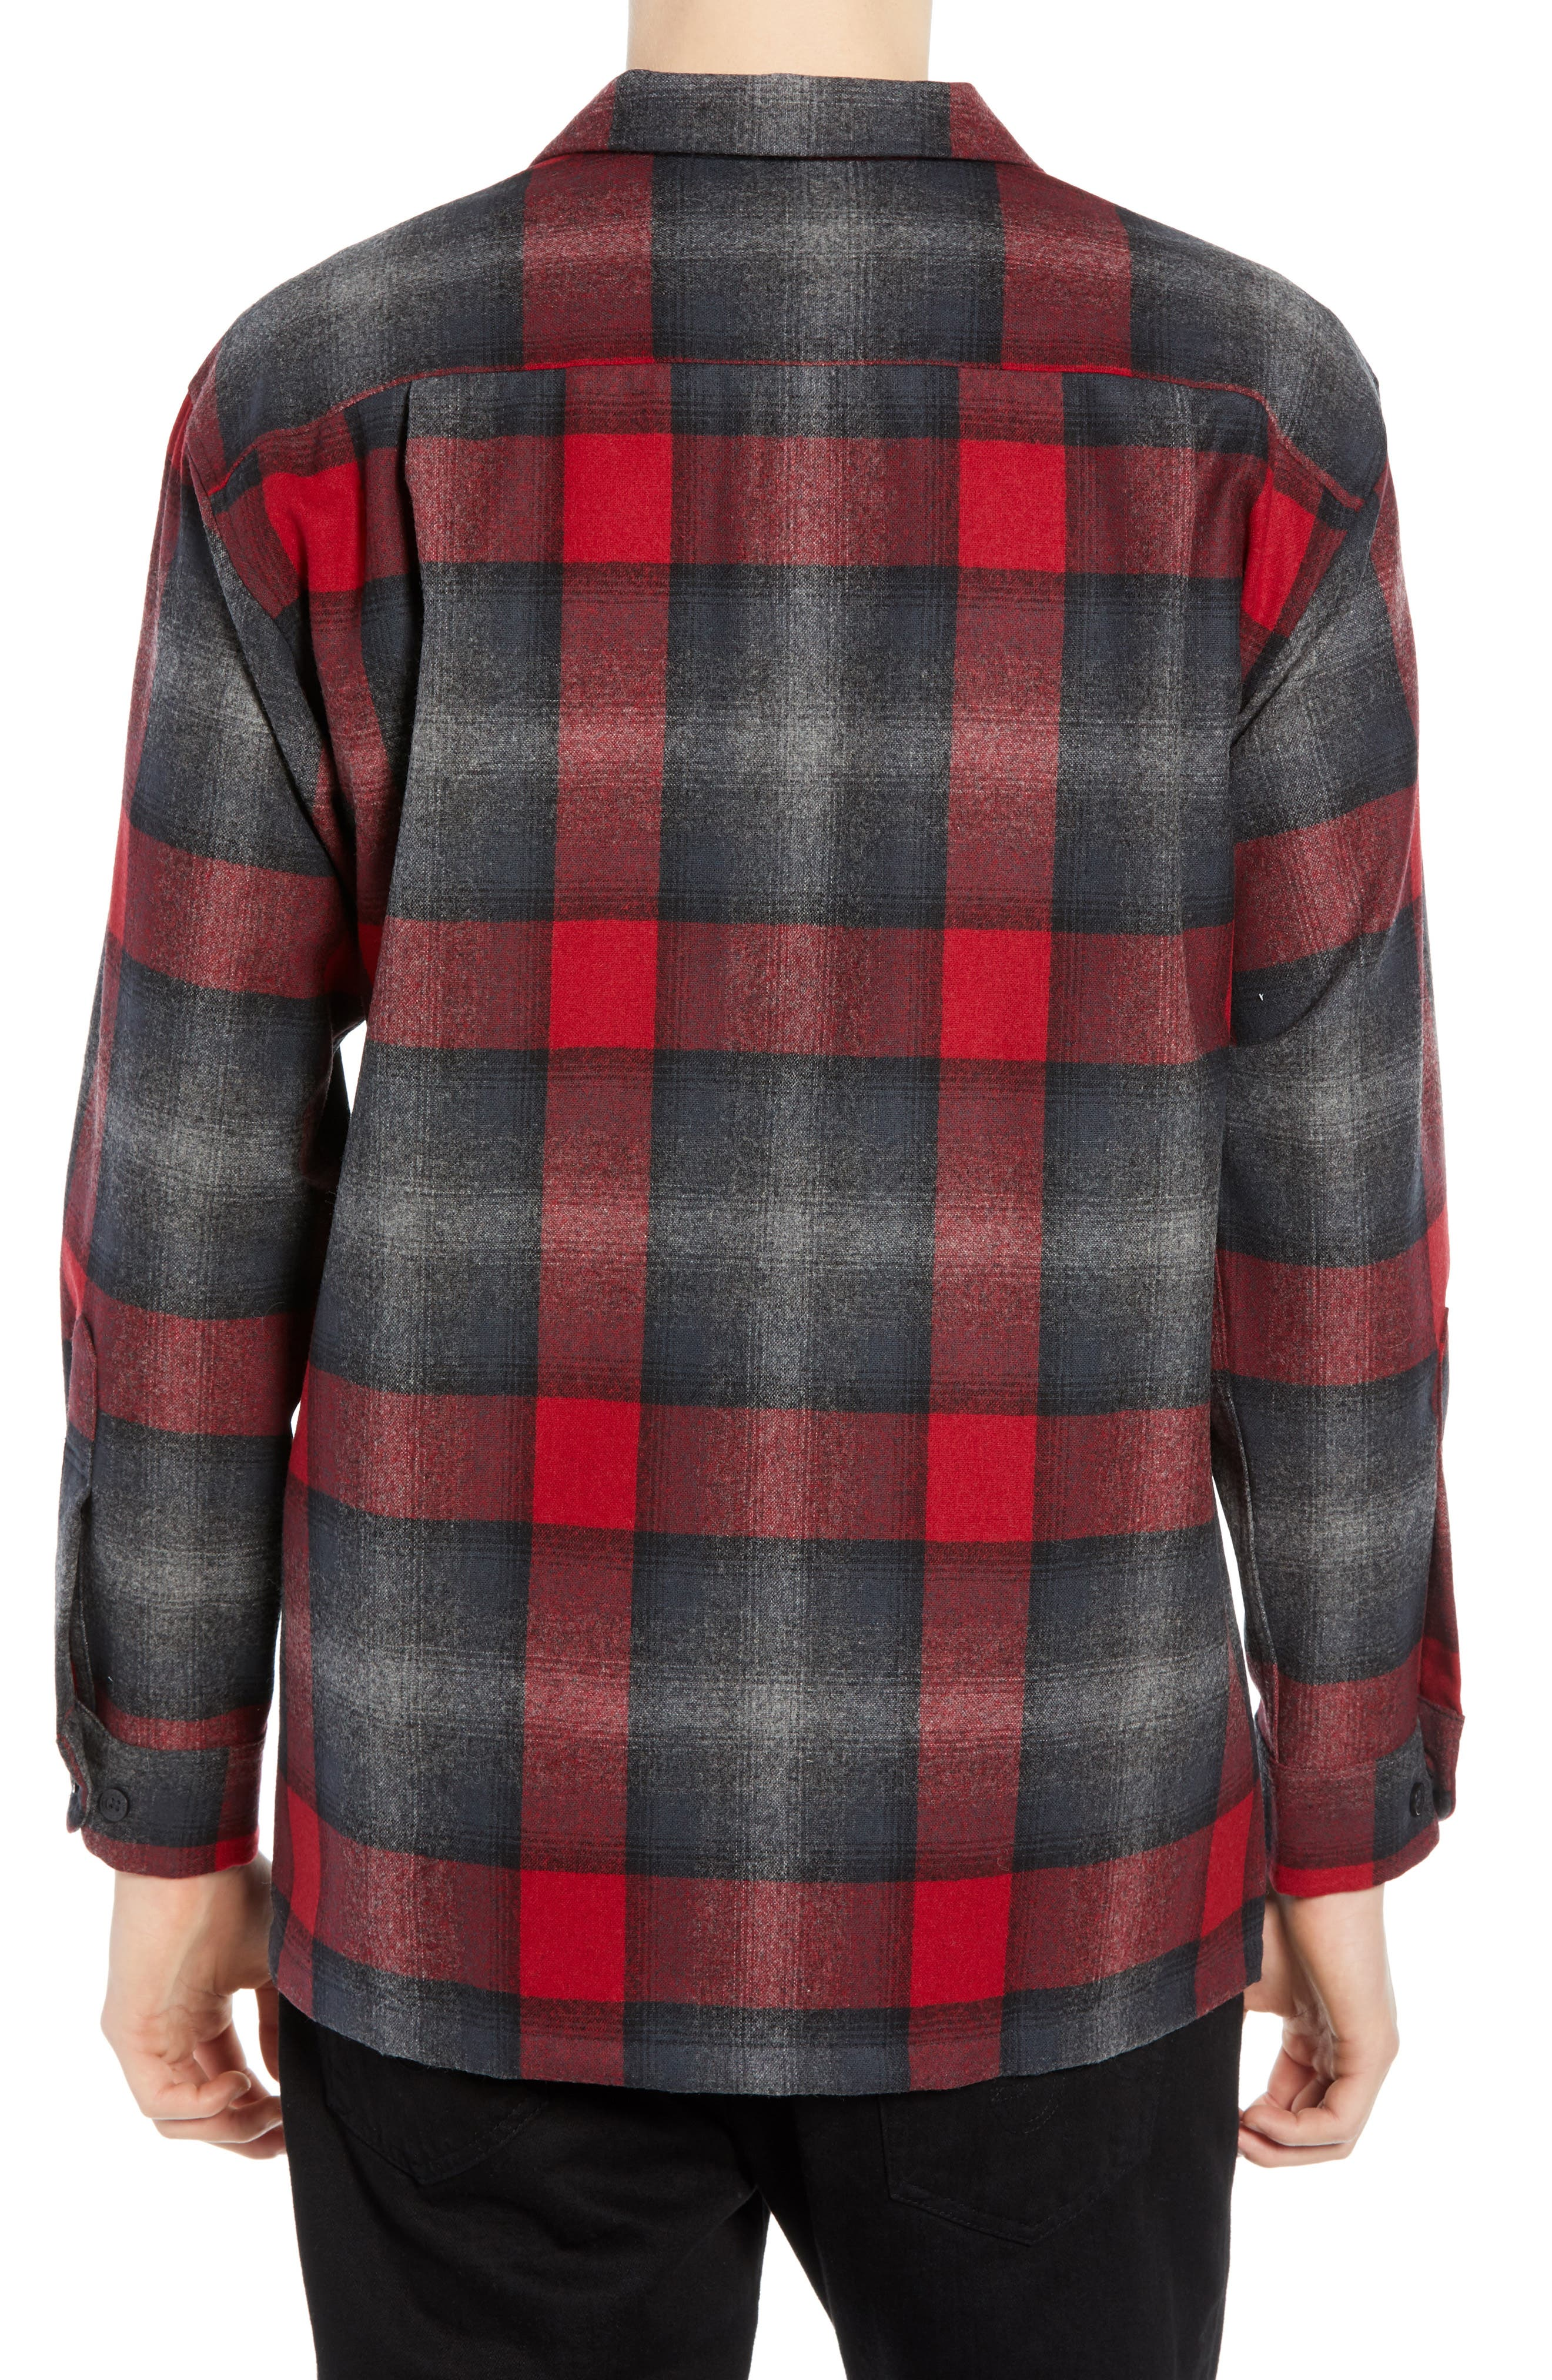 Board Wool Flannel Shirt,                             Alternate thumbnail 3, color,                             BLACK/ GREY MIX/ RED OMBRE